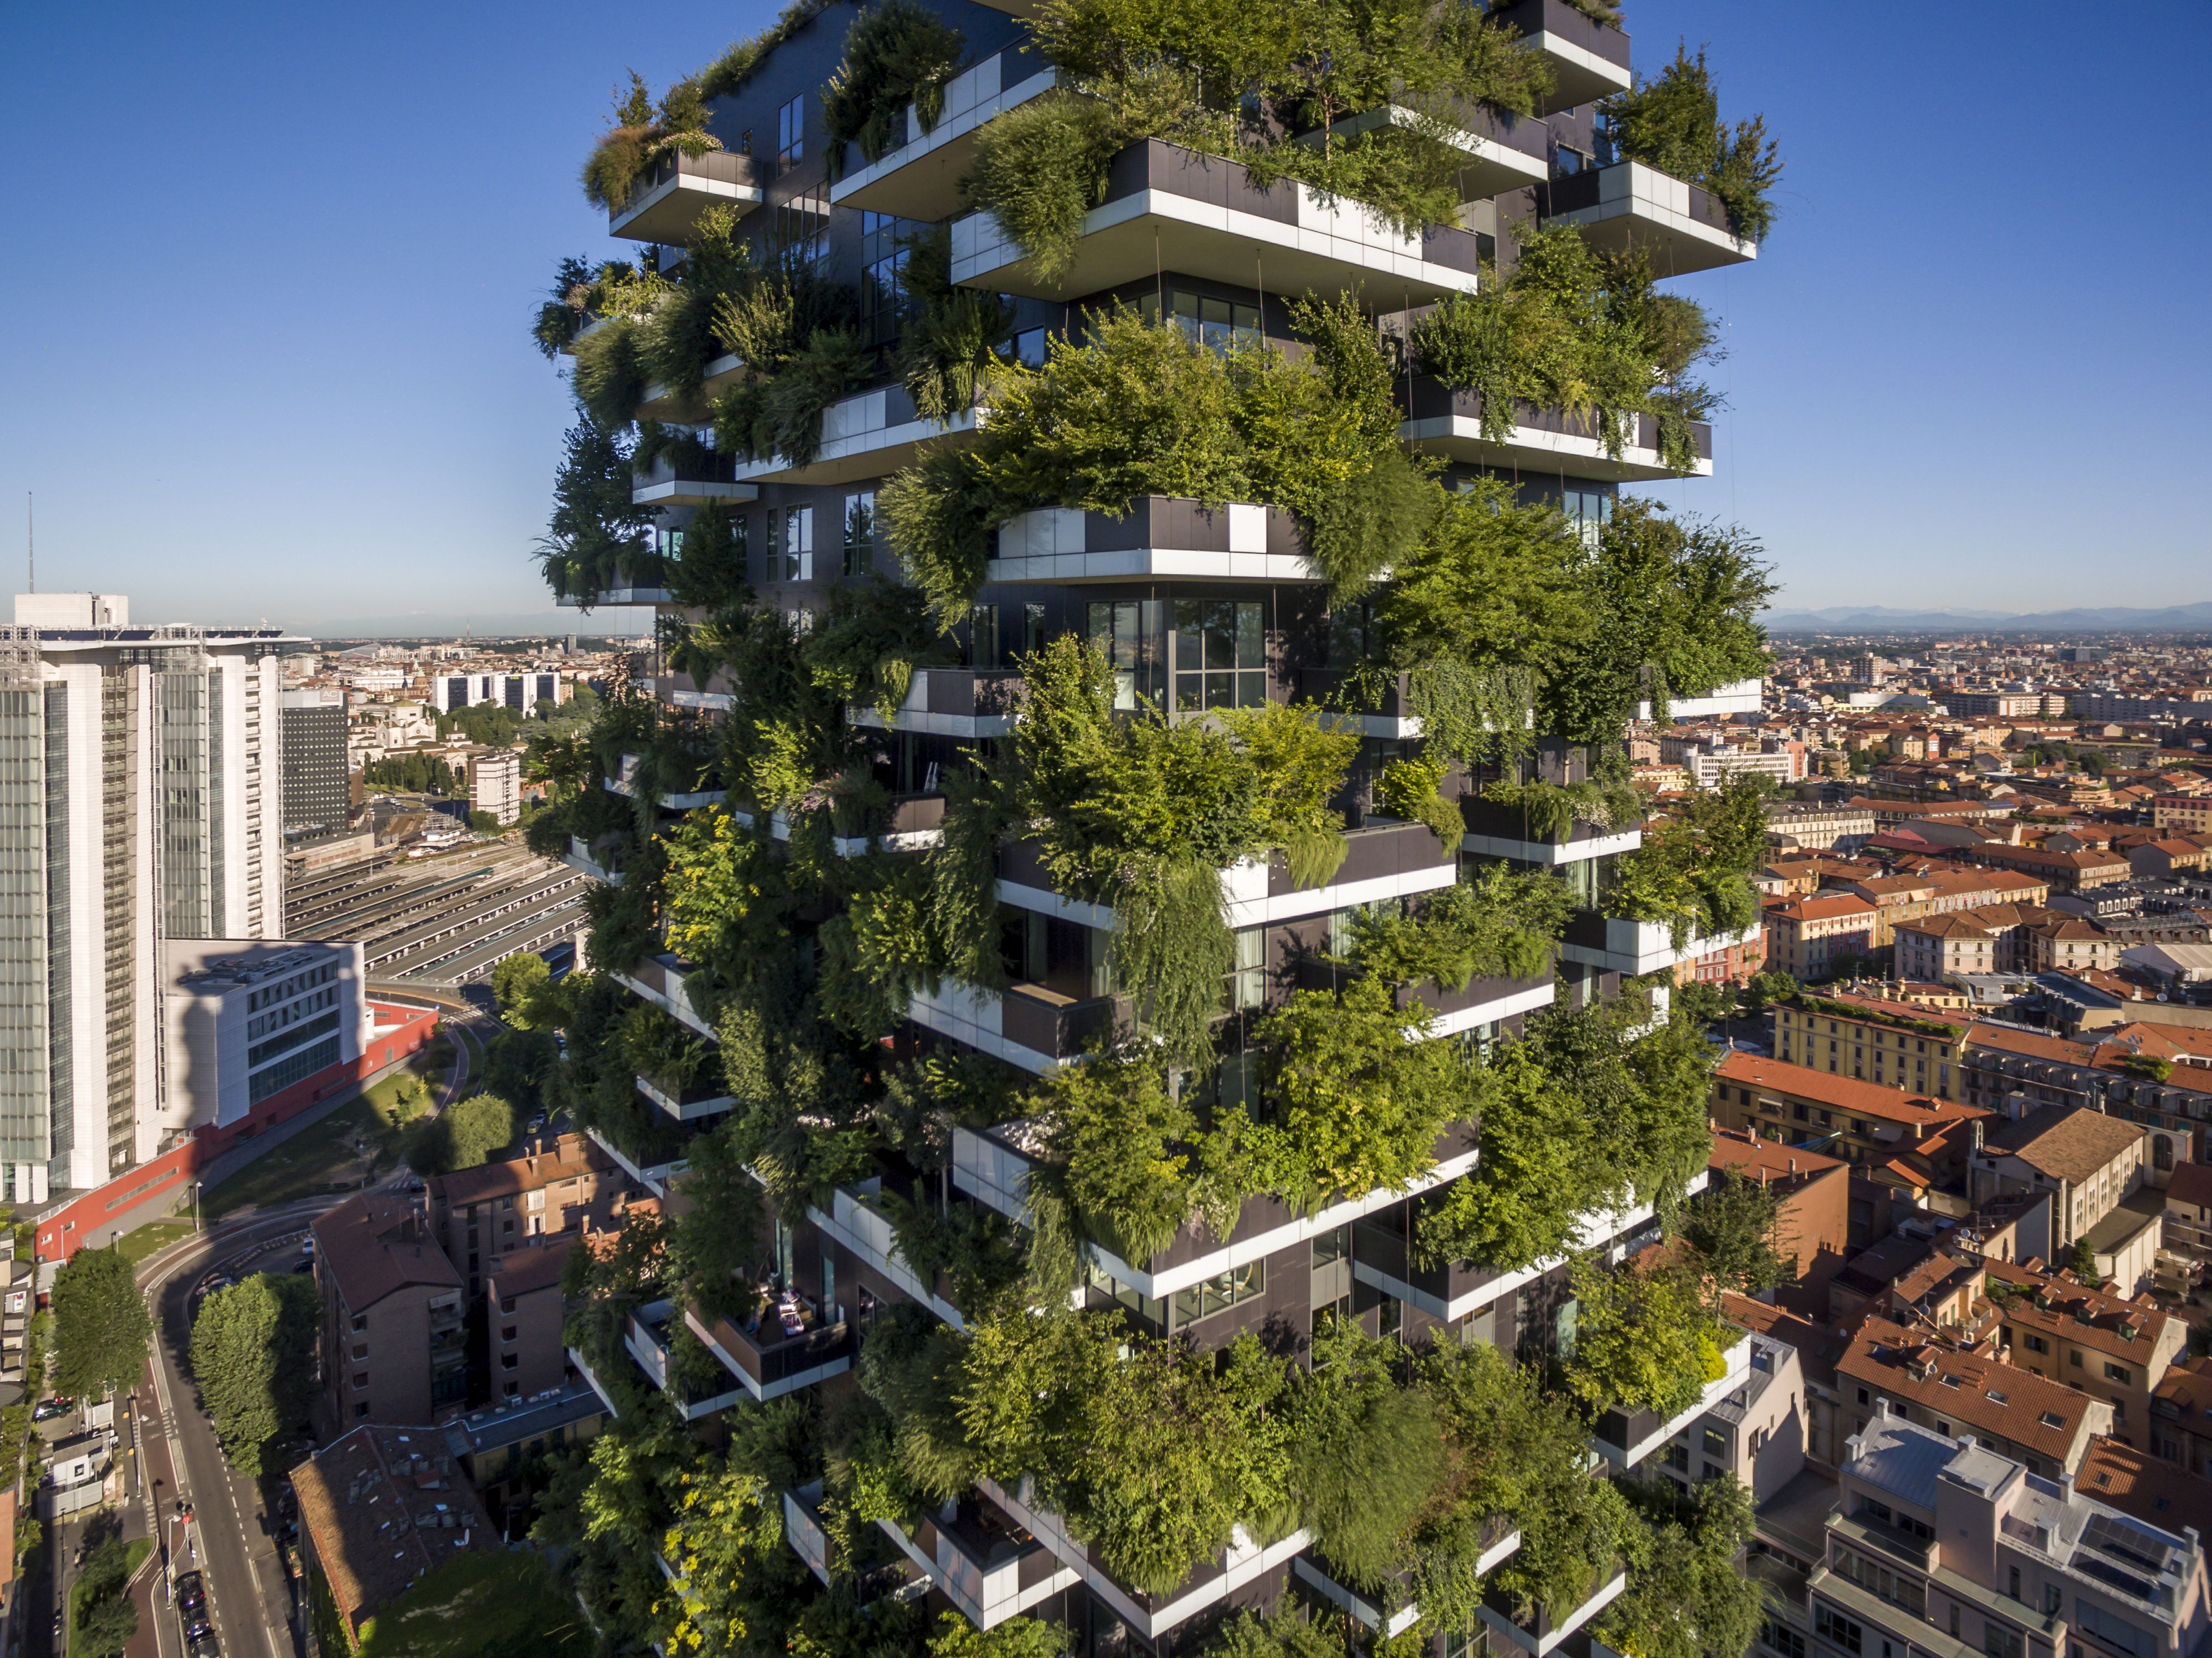 Are Vertical Forests A Solution To Climate Change And Housing Shortages Green Building Architecture Vertical Forest Green Architecture